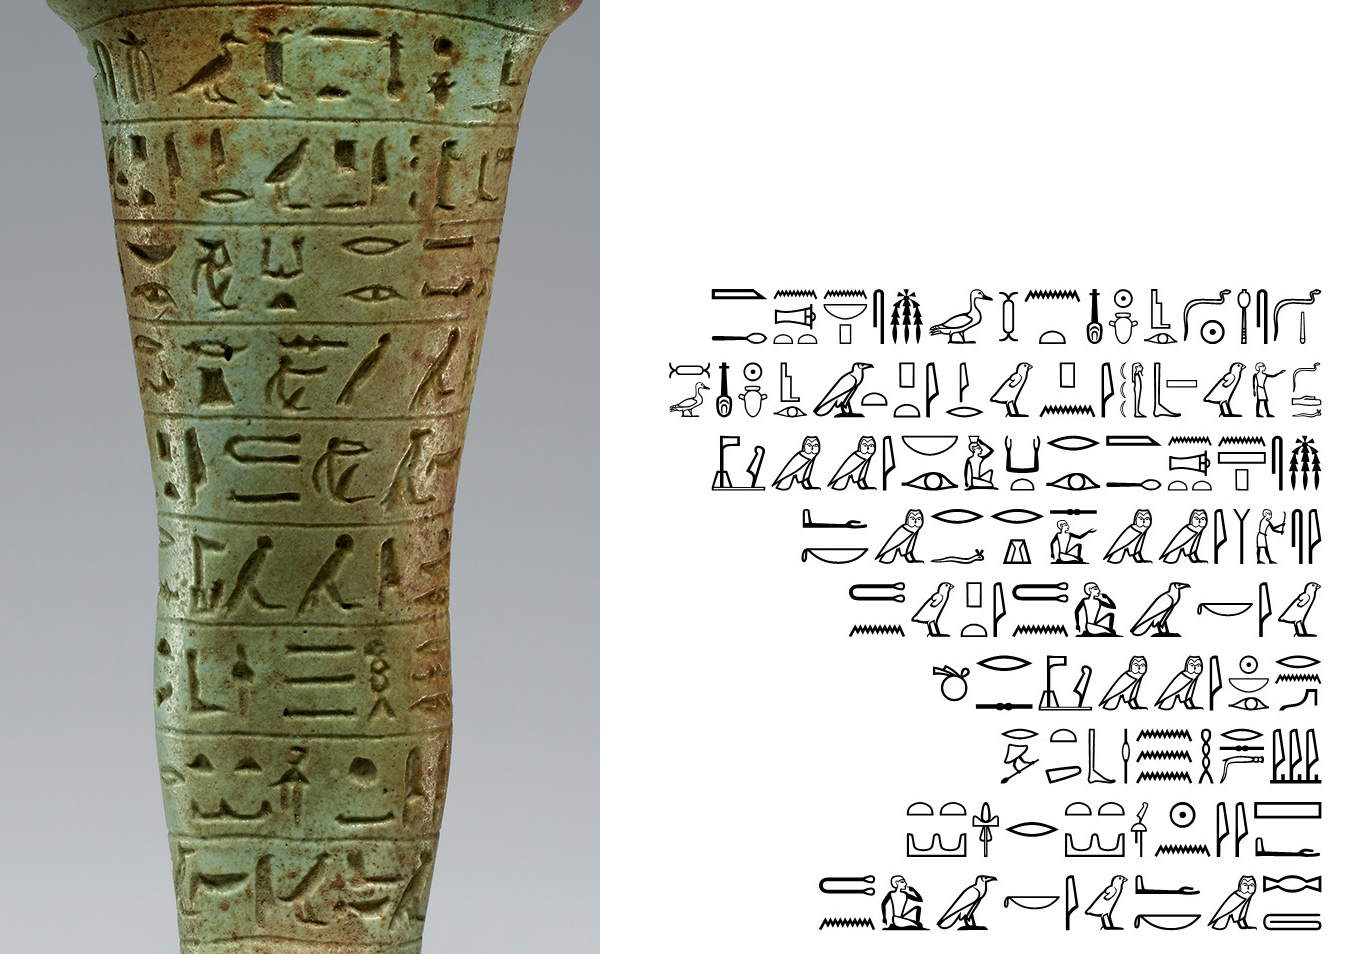 Left, close up of hieroglyphics, symbols of birds and people on a green statue; right, black hieroglyphics on a white background